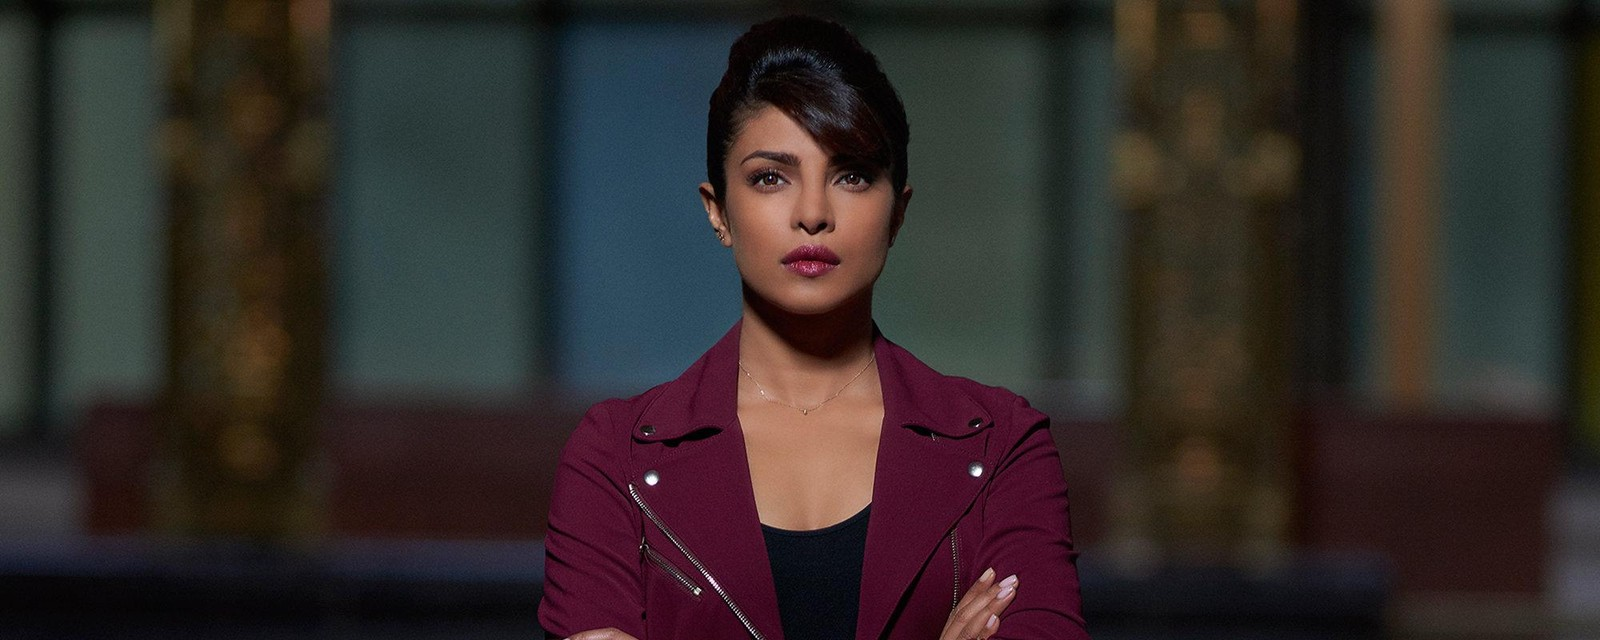 quantico women Quantico is an american television drama thriller series which premiered on the american broadcasting company (abc) only in quantico's case it's a woman.